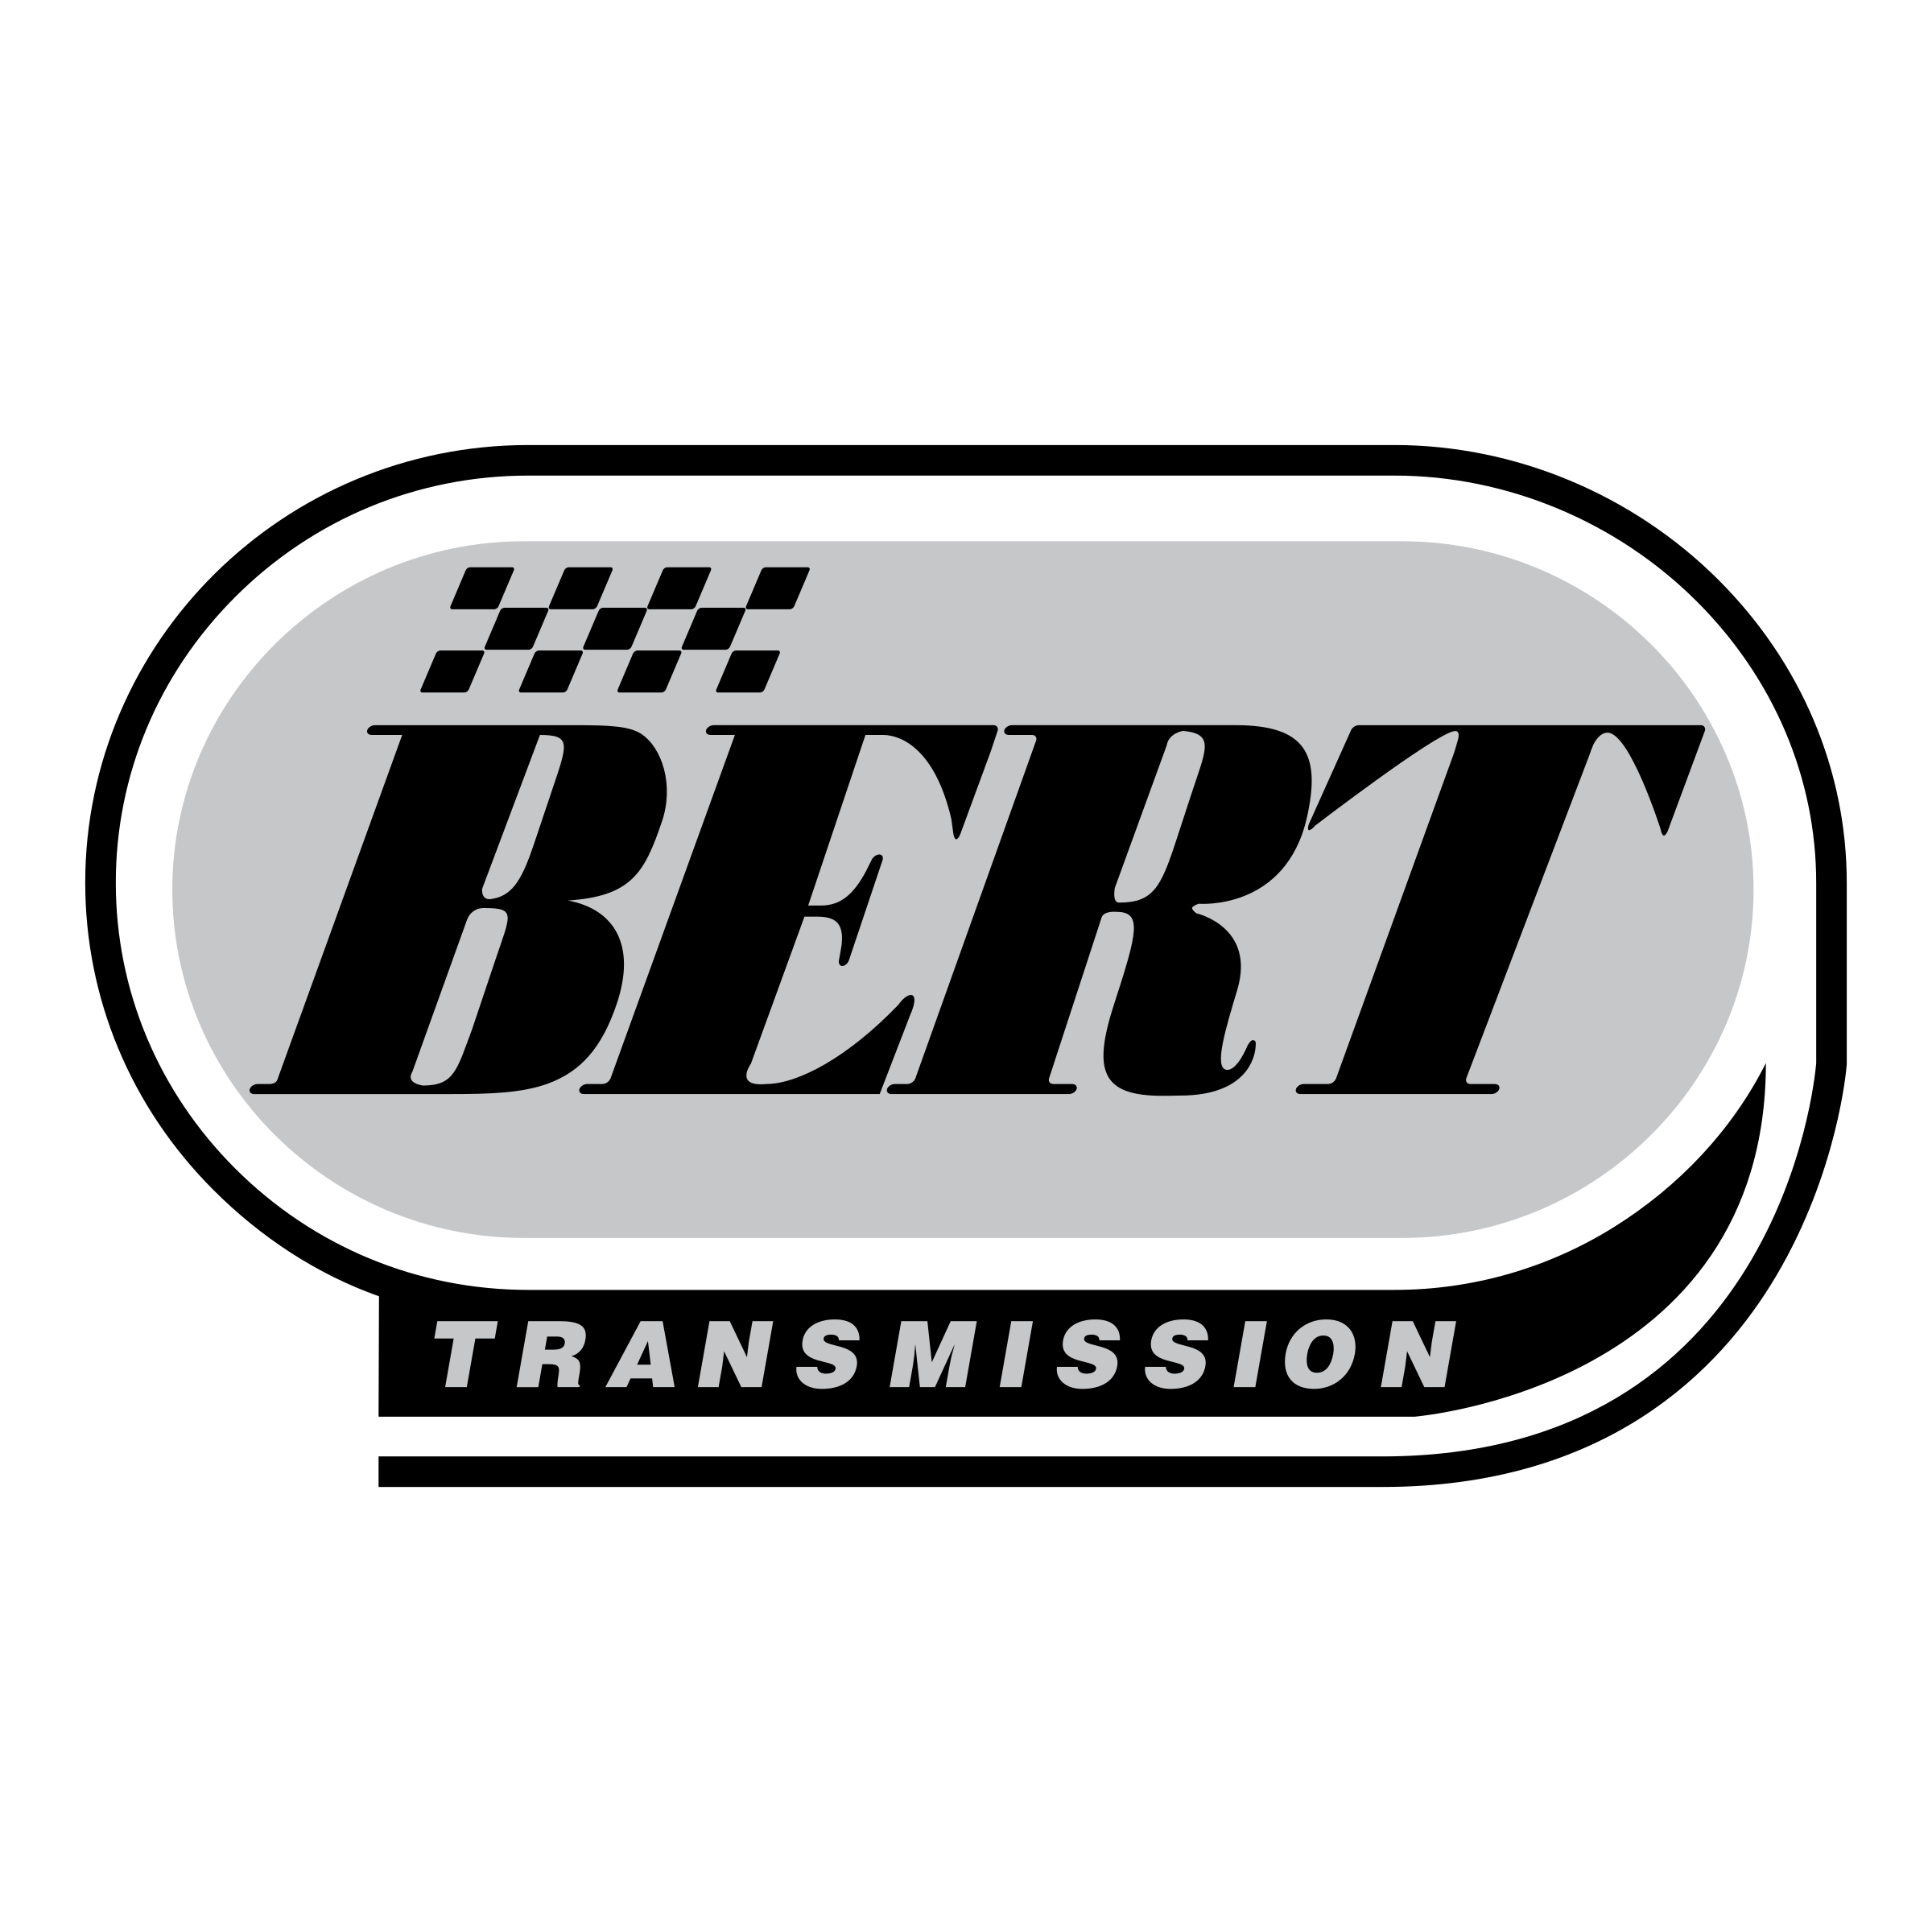 Bert logo png transparent. Bio vector transmission picture free download